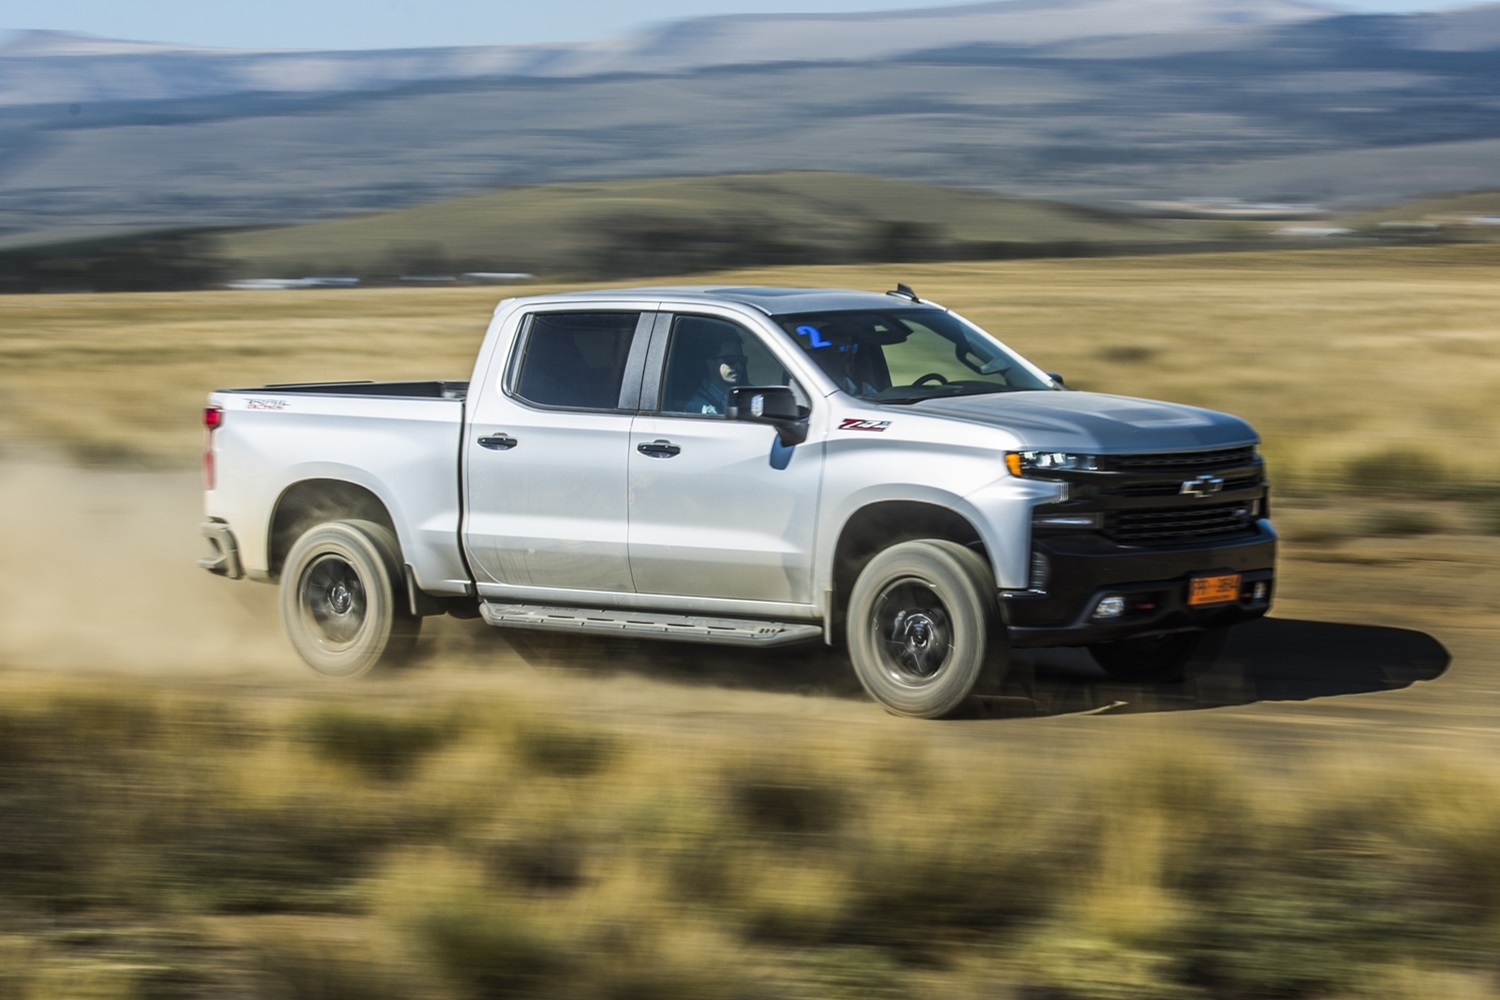 Chevrolet Silverado Thieves Disable Onstar Tracking | Gm Lease A 2021 Chevy Silverado Engine Problems, Front Bumper, Forum